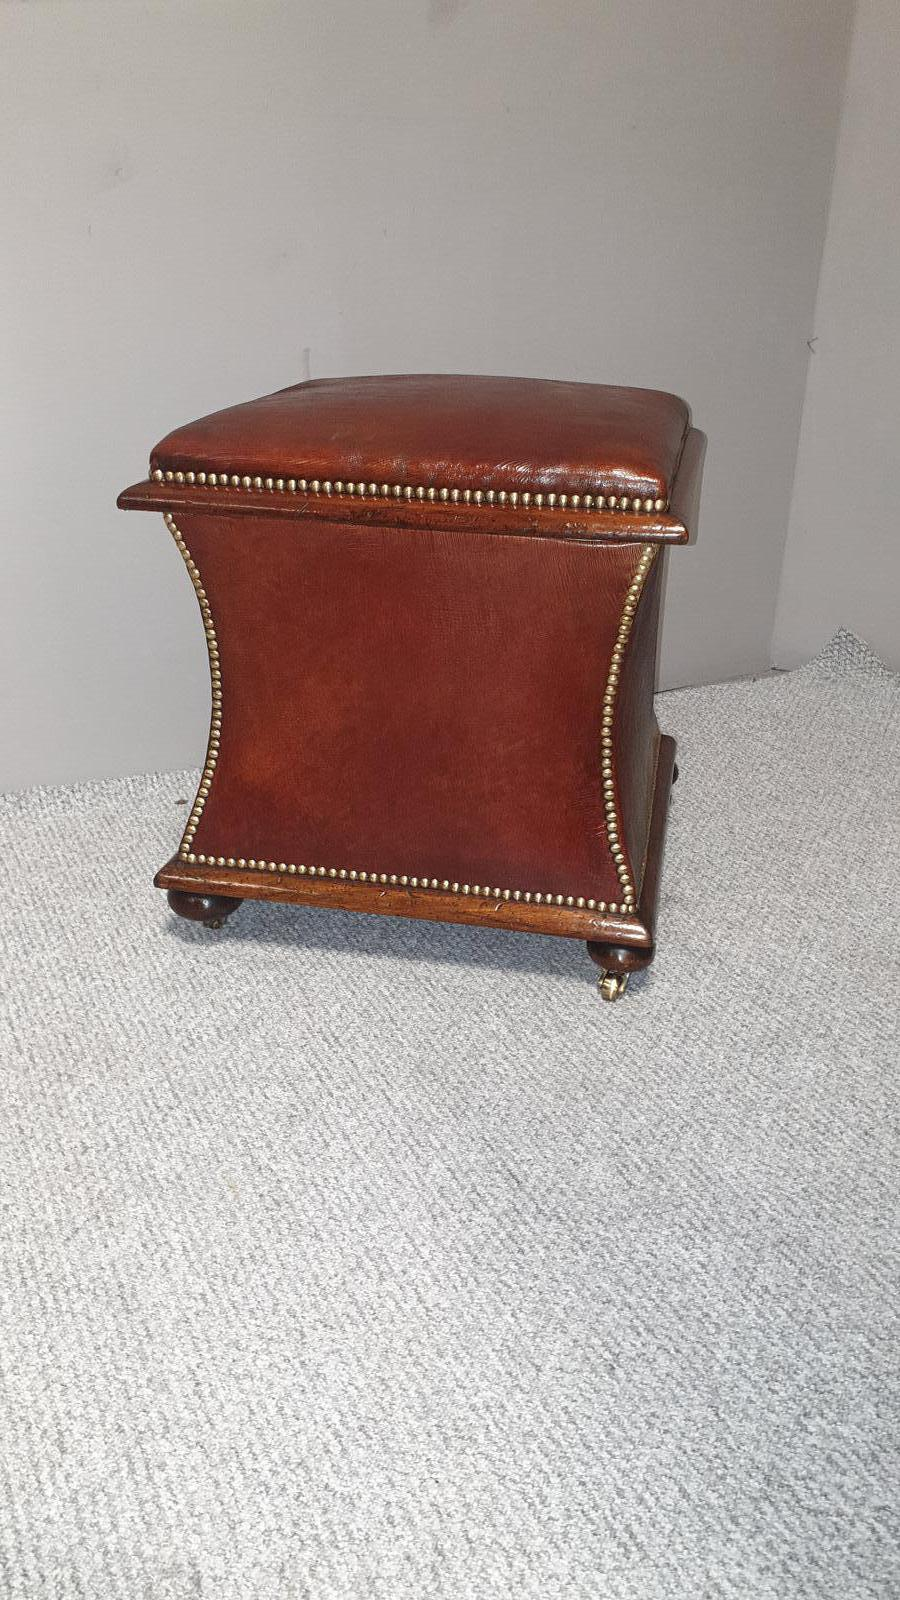 Regency Waisted Leather Ottoman Box (1 of 1)